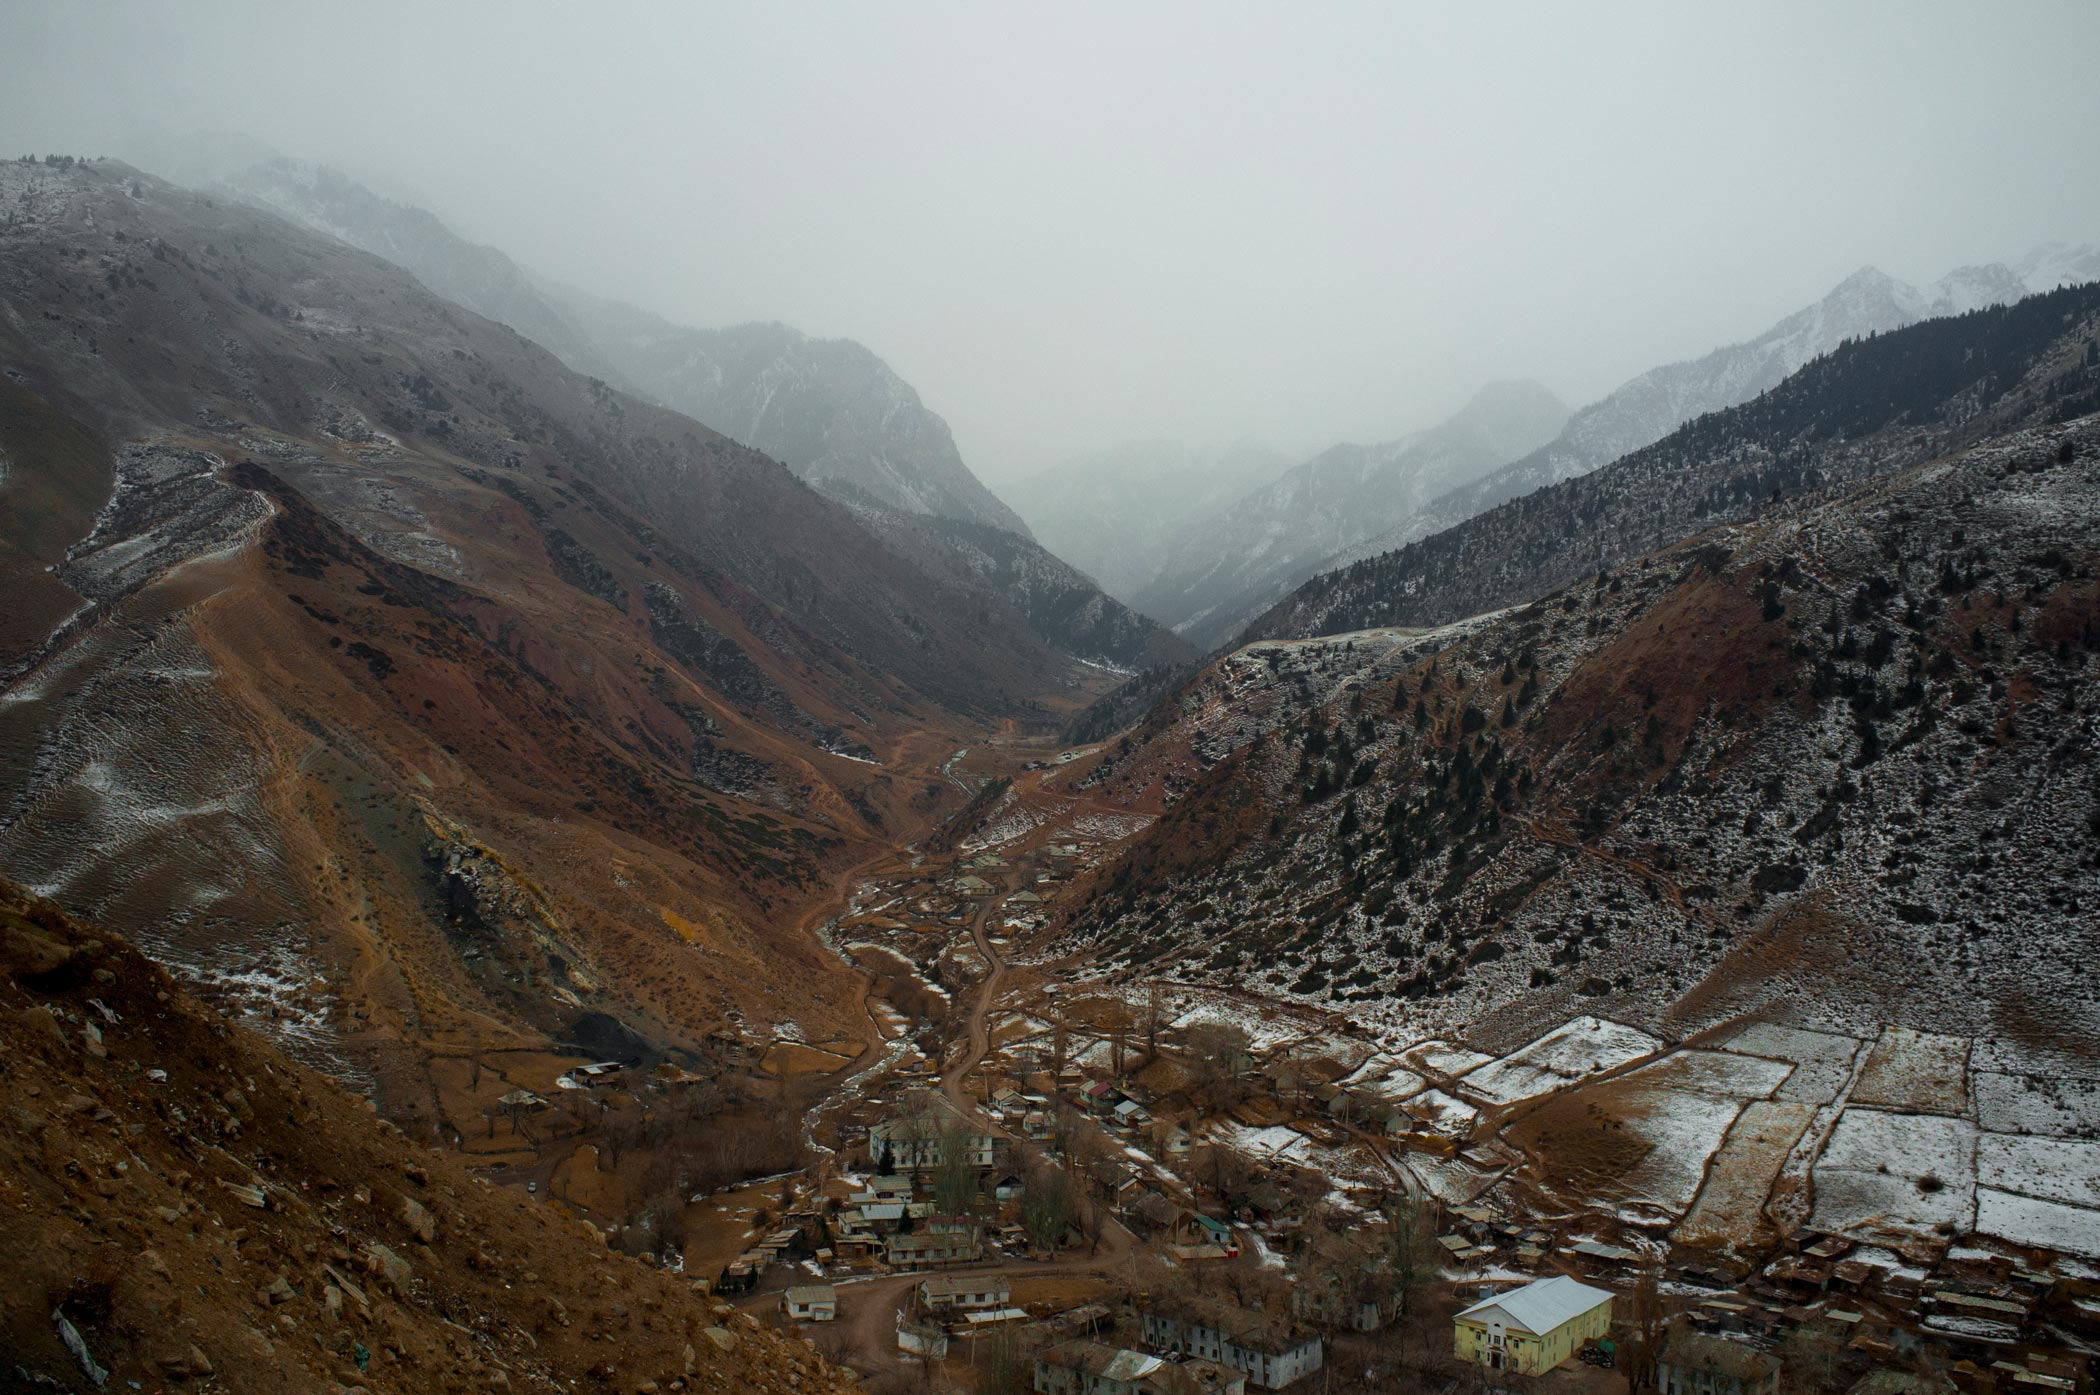 A view across the valley in Min Kush, Kyrgyzstan